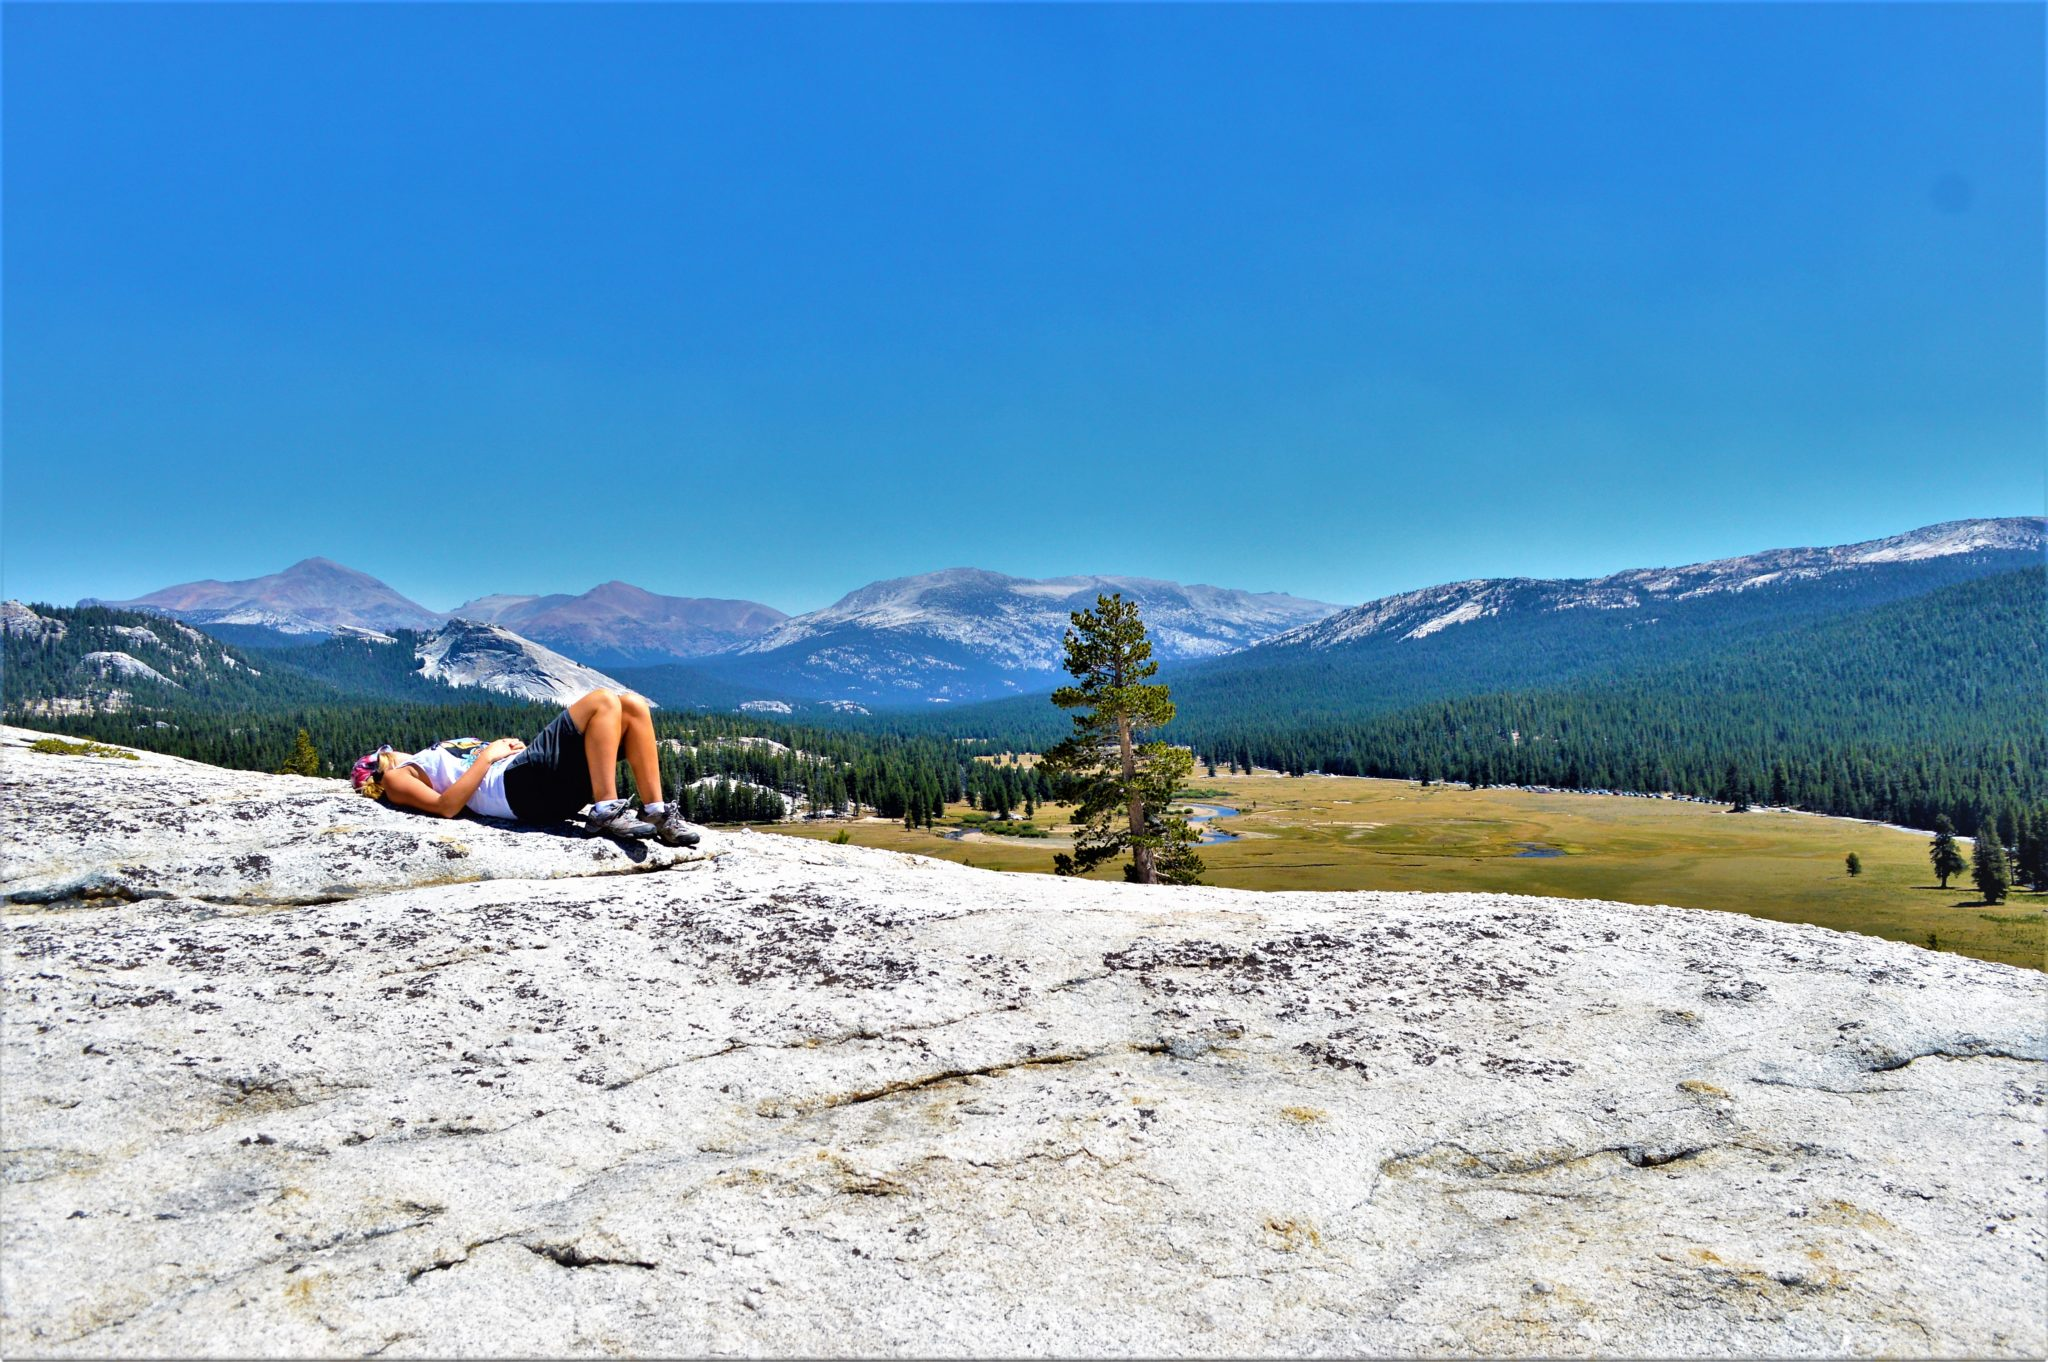 Lying on top of hill, Yosemite national Park, California